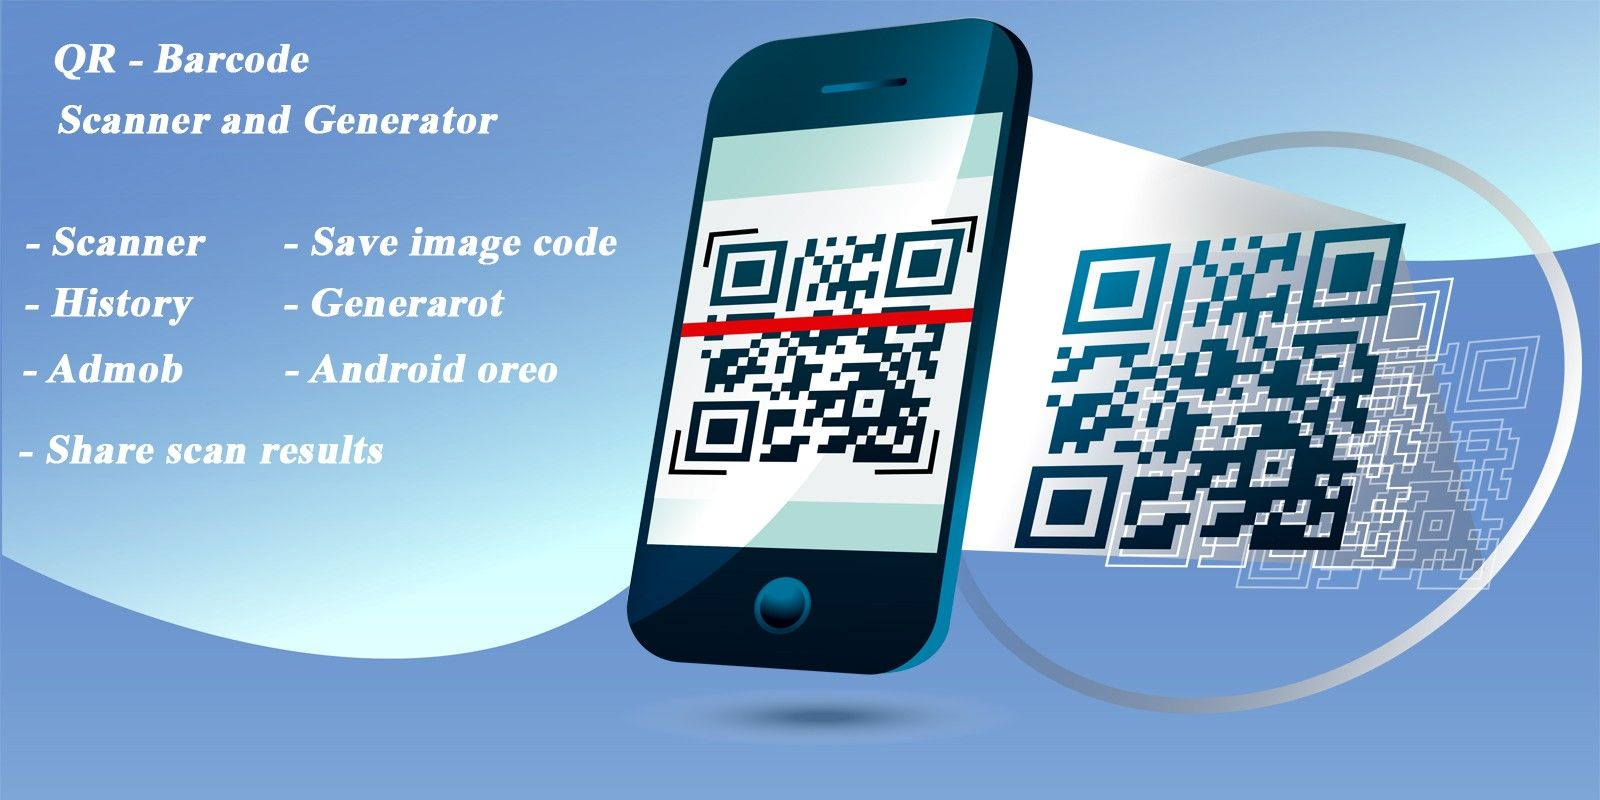 Codester Android App Bar Qr Barcode Qr Code Barcode Scanner App Buy Android Project Buy Qr And Qr Barcode Barcode Scanner Android Oreo